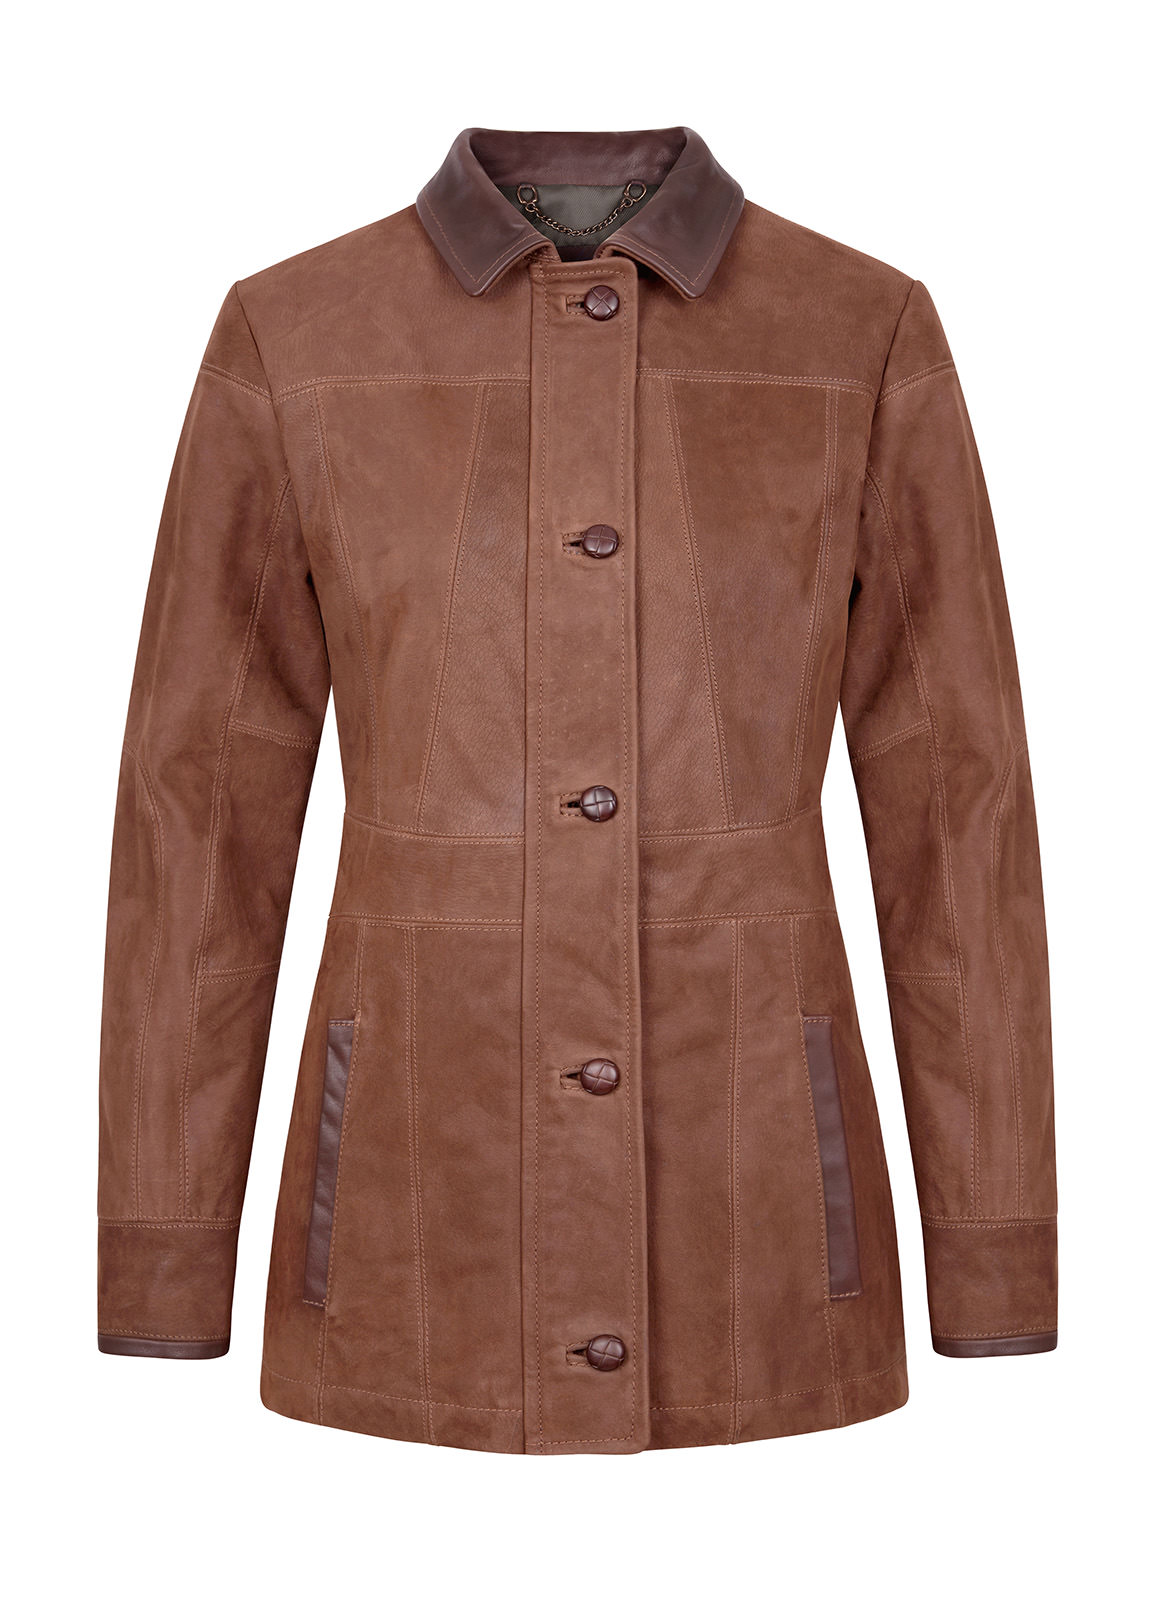 Dubarry_ Goldsmith Ladies Leather Jacket - Walnut_Image_2